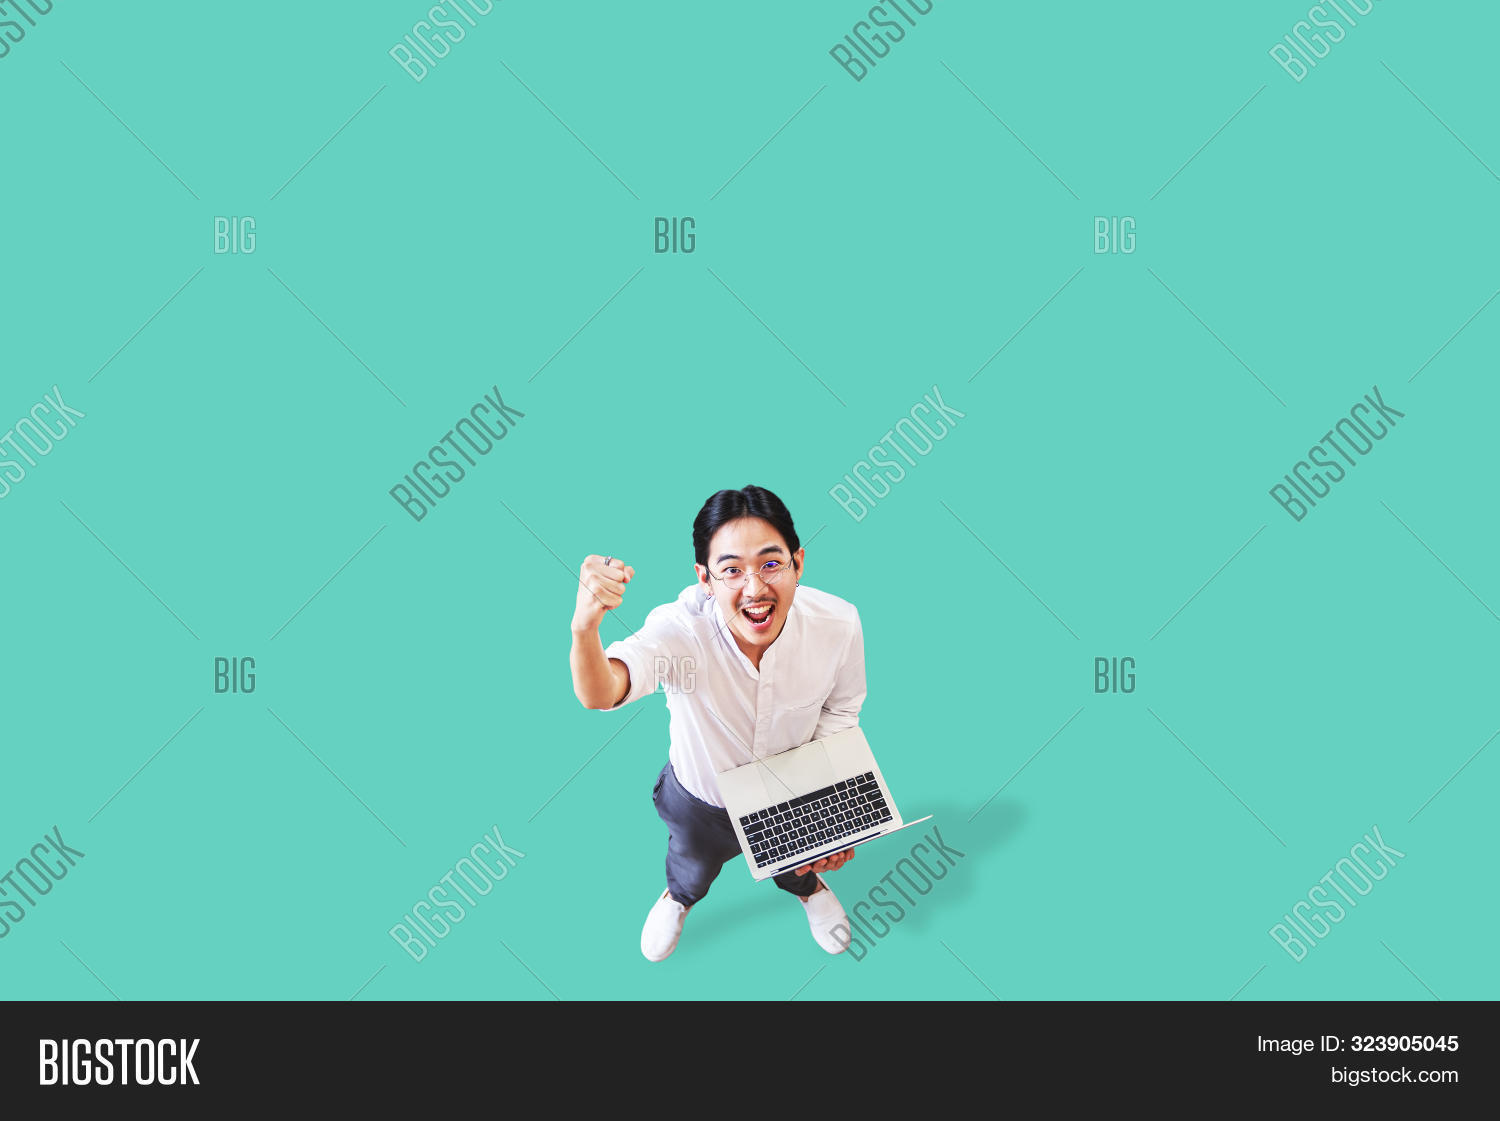 Top View Of Cheerful Asian Man Holding Computer Laptop On Isolated Background Feeling Win ,celebrati